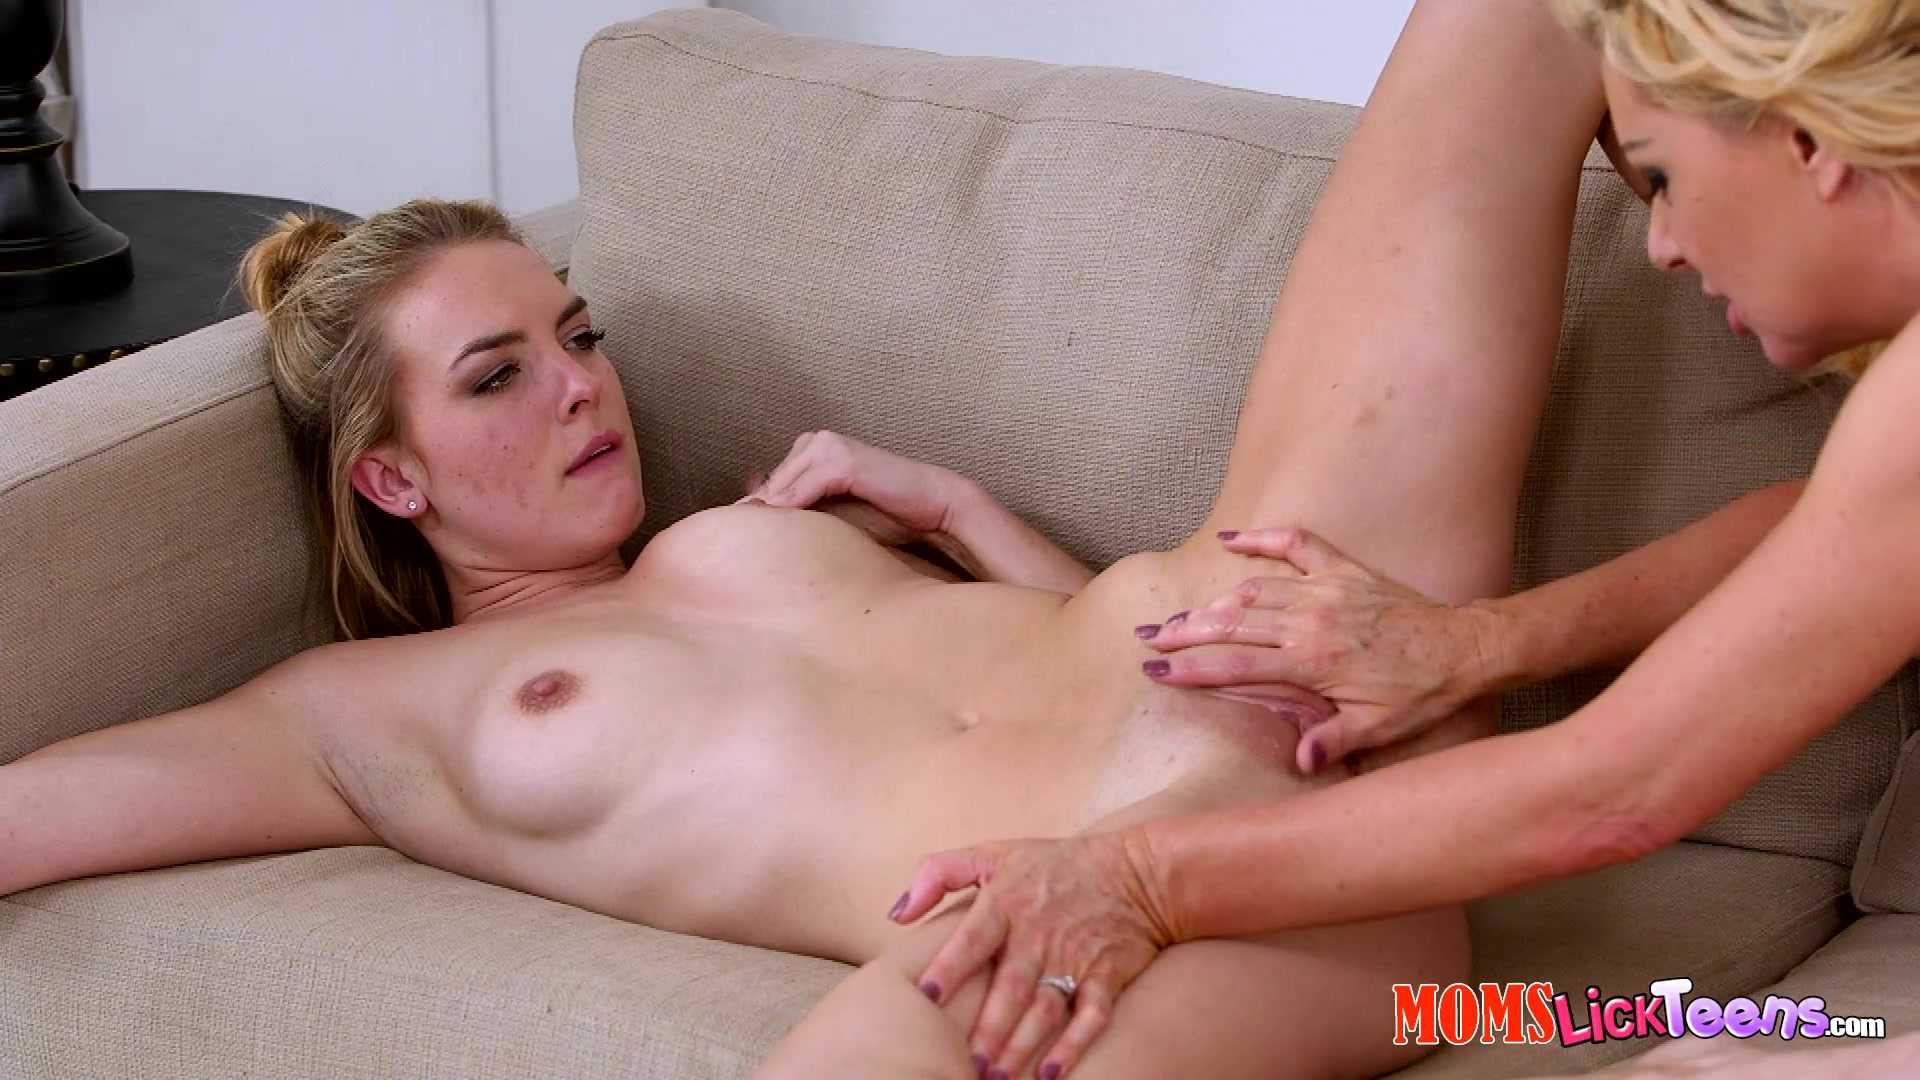 Mia evans set german babes open legs pic liking the pussy